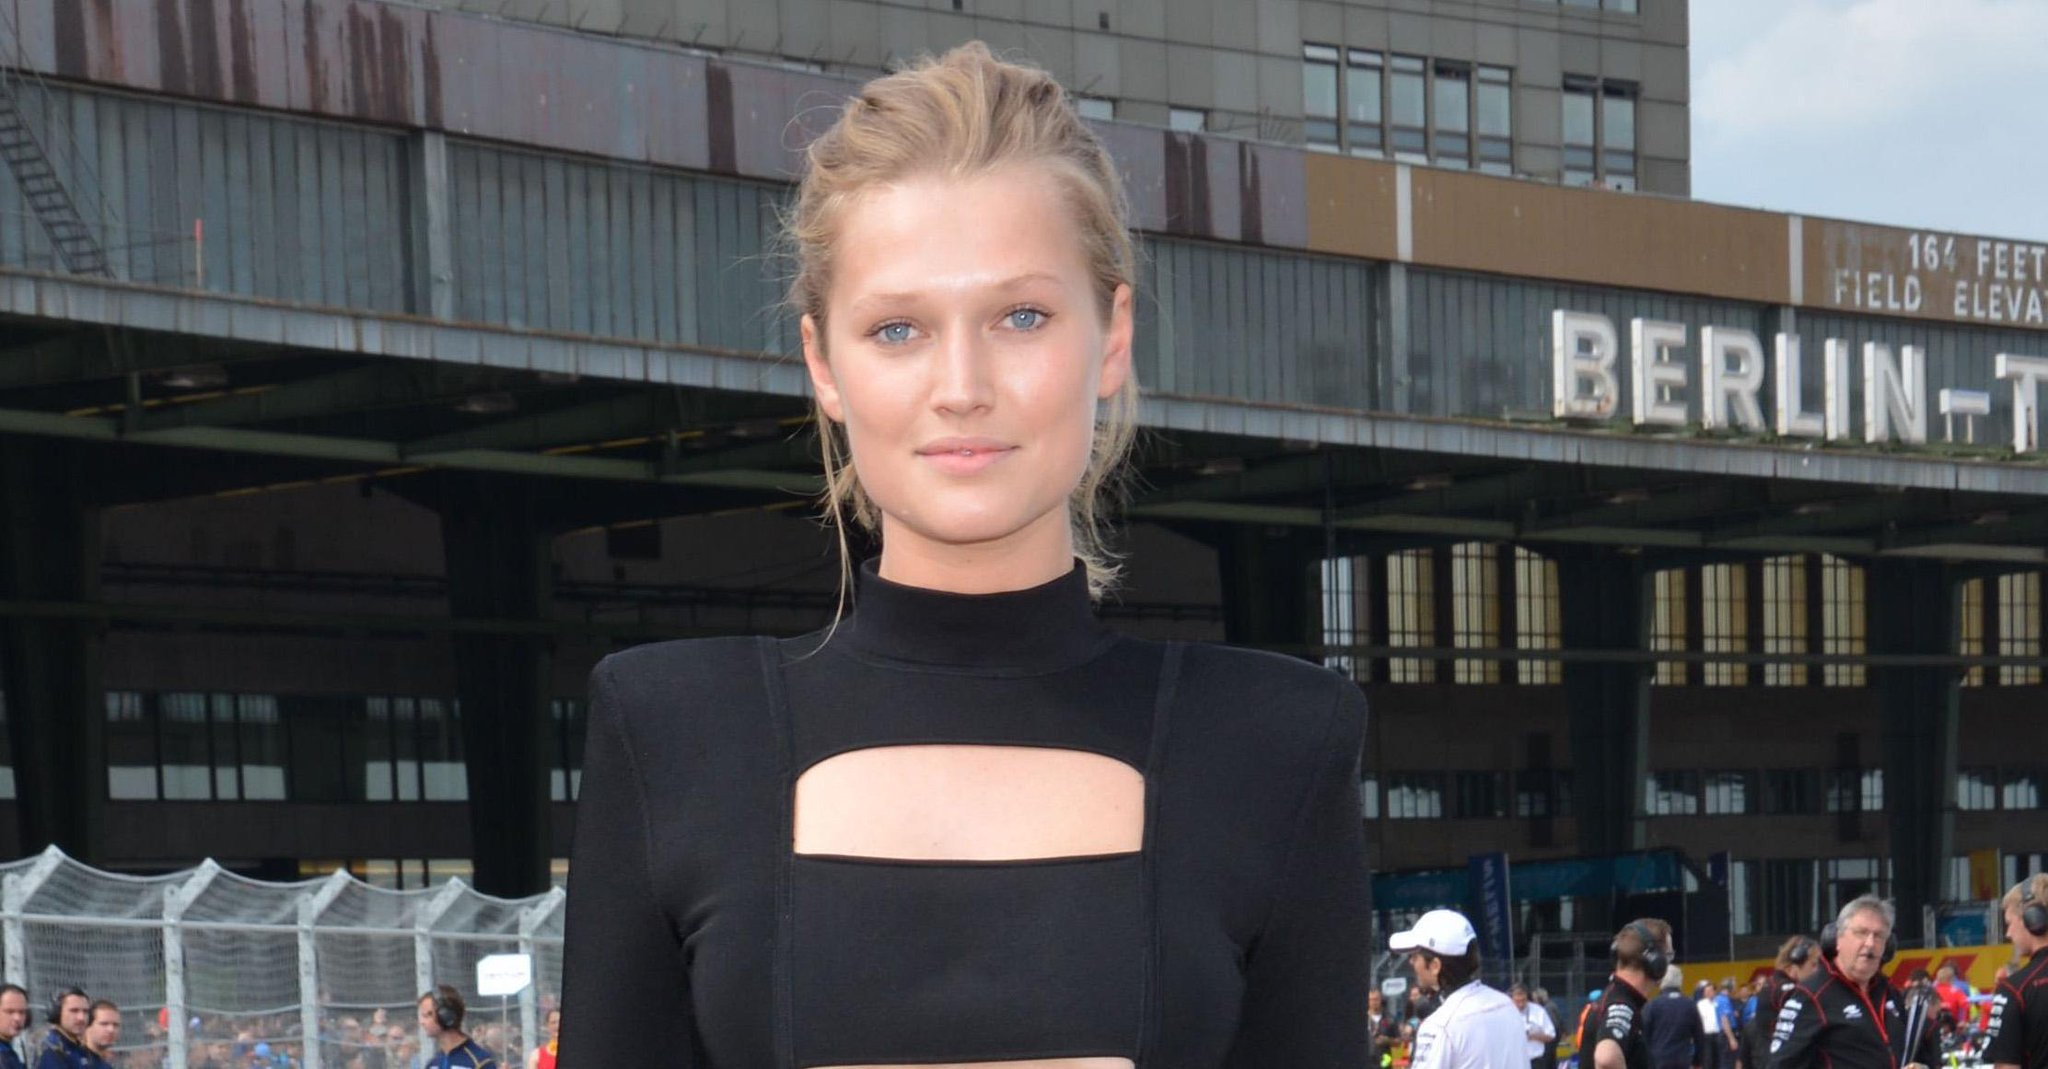 RT @JustJared: .@ToniGarrn cheered on Team Germany at the Formula E Championship over the weekend: http://t.co/i6wbZ4ss1X http://t.co/kHhhs…